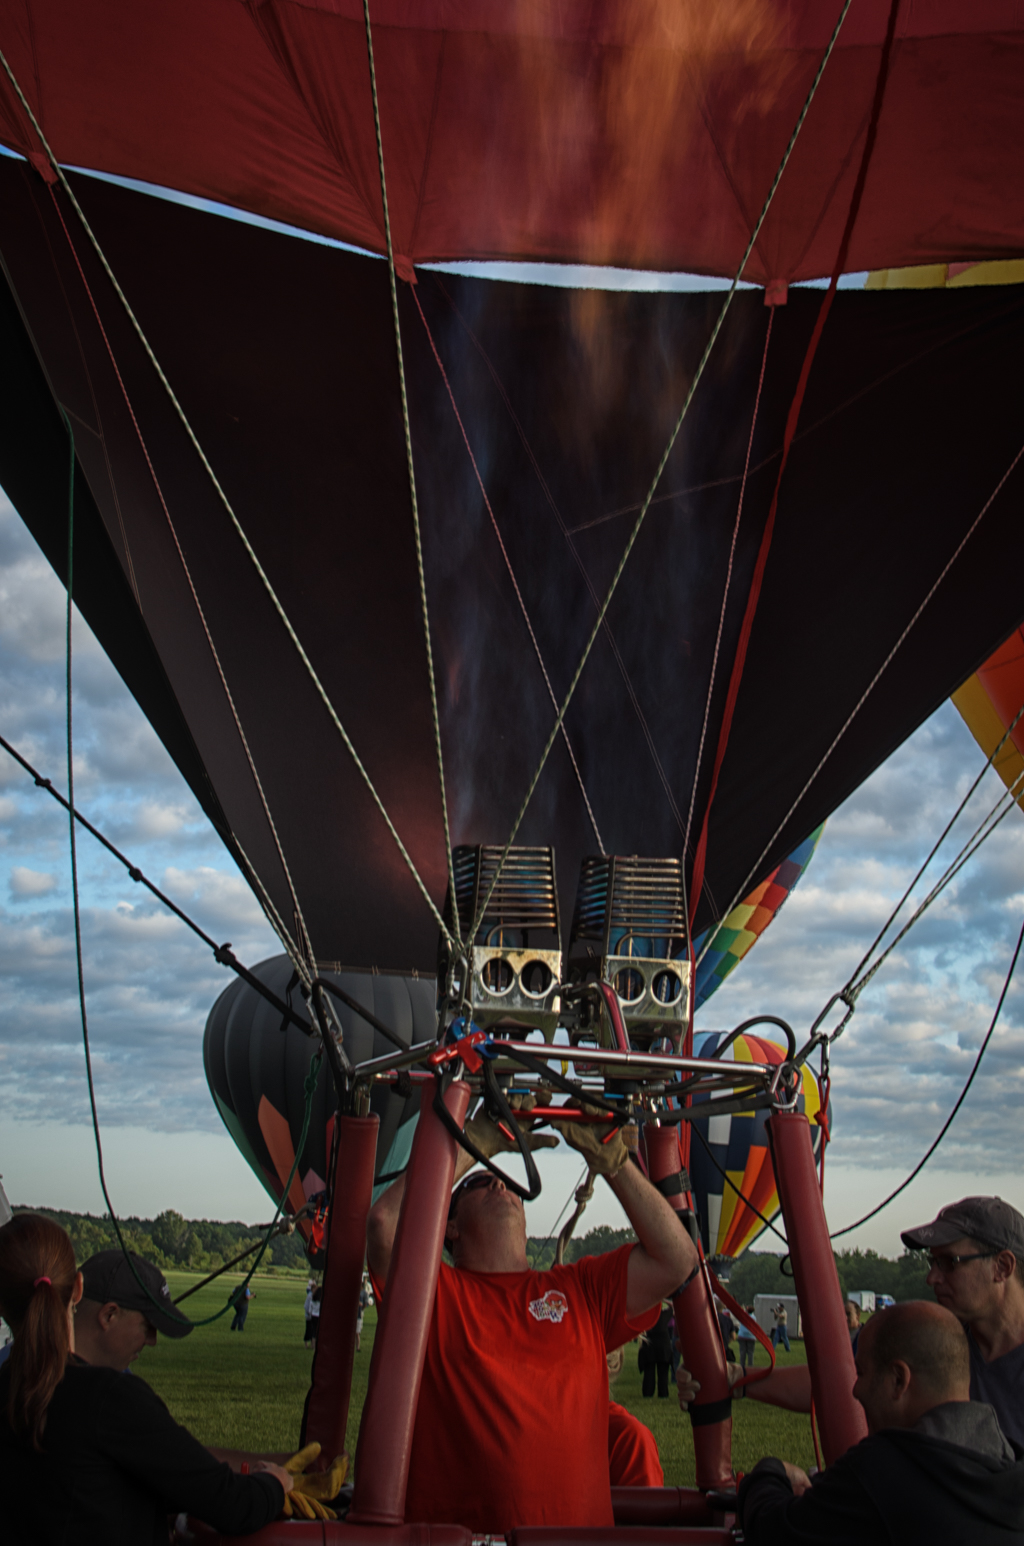 32nd annual New Jersey Festival of Ballooning wpid14603 NIKON D5100 20140725 1058 Edit